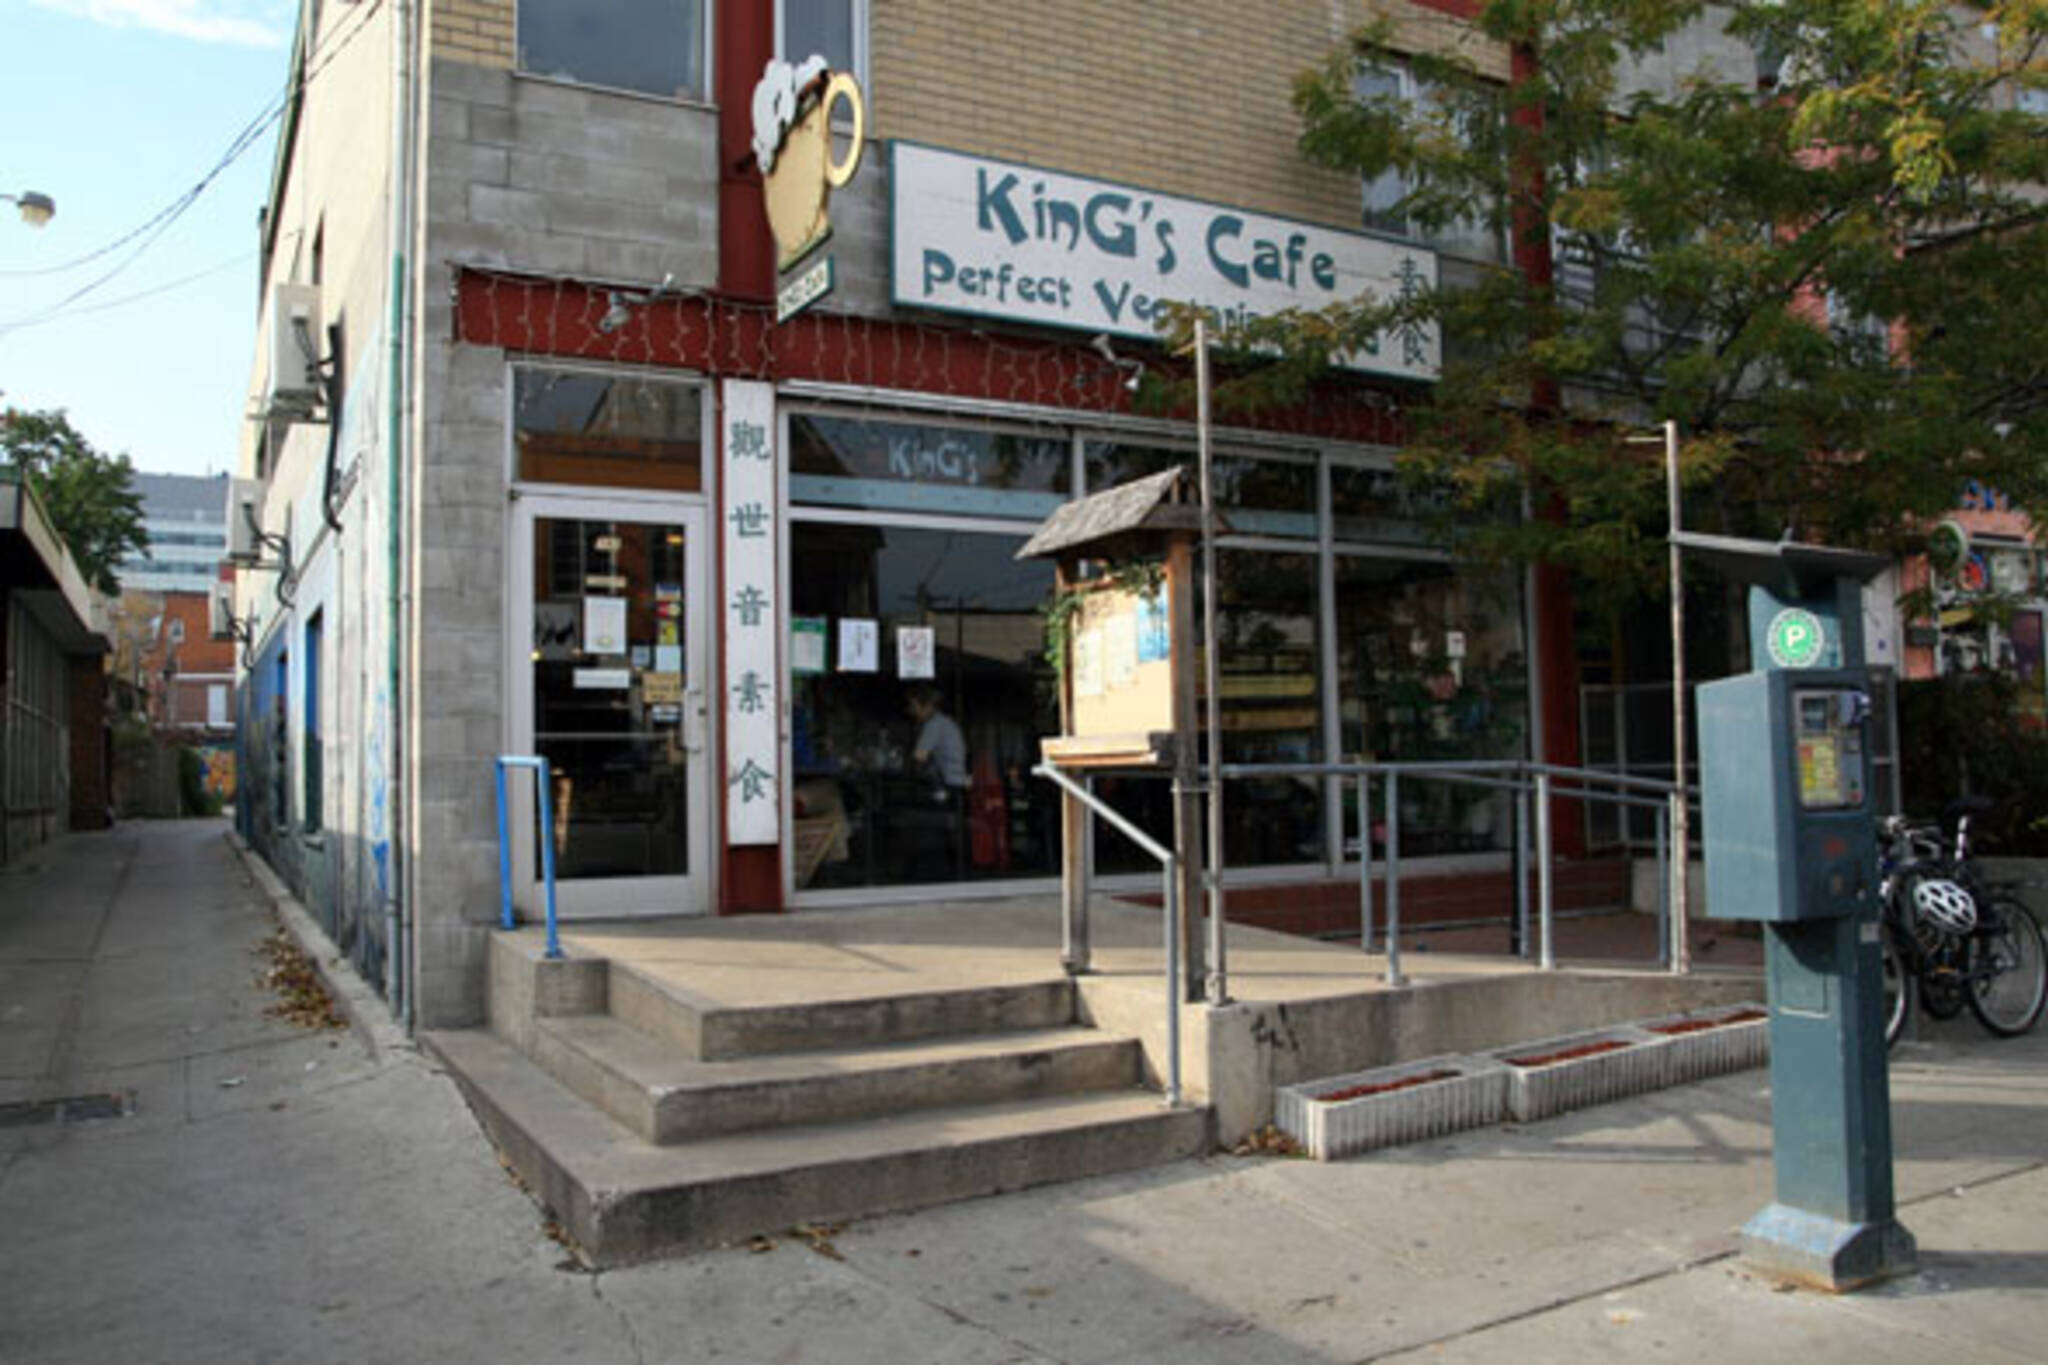 20071110_kingscafe.jpg